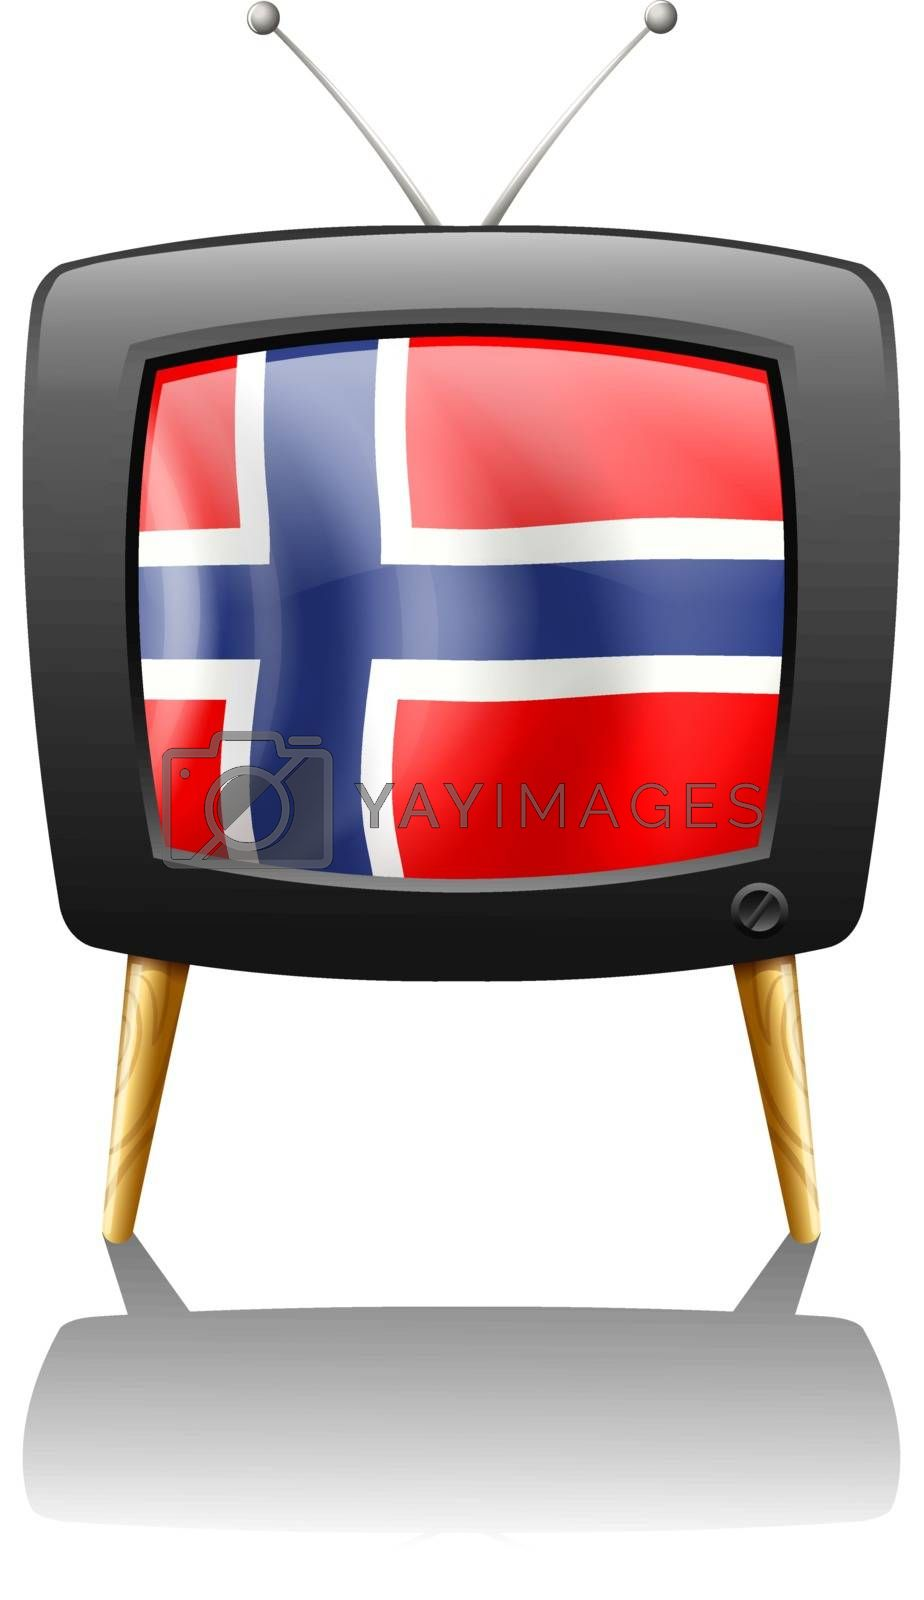 Illustration of the flag of Norway inside the TV on a white background